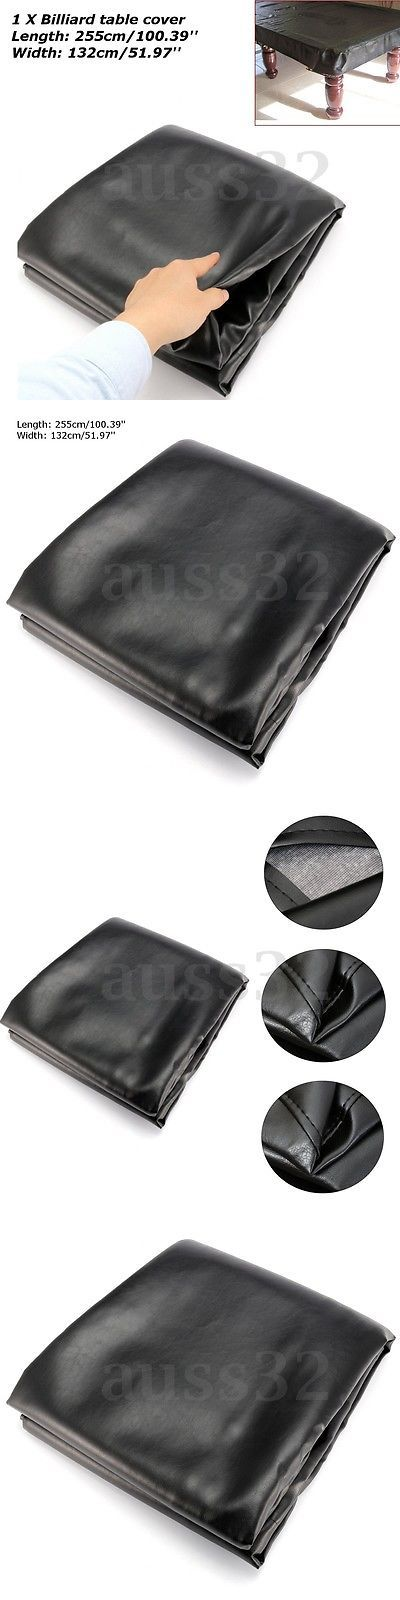 Table Covers 91569: Rubber Waterproof Cover Dustproof Cloth For 8Ft Pool Snooker Billiard Table -> BUY IT NOW ONLY: $59.99 on eBay!